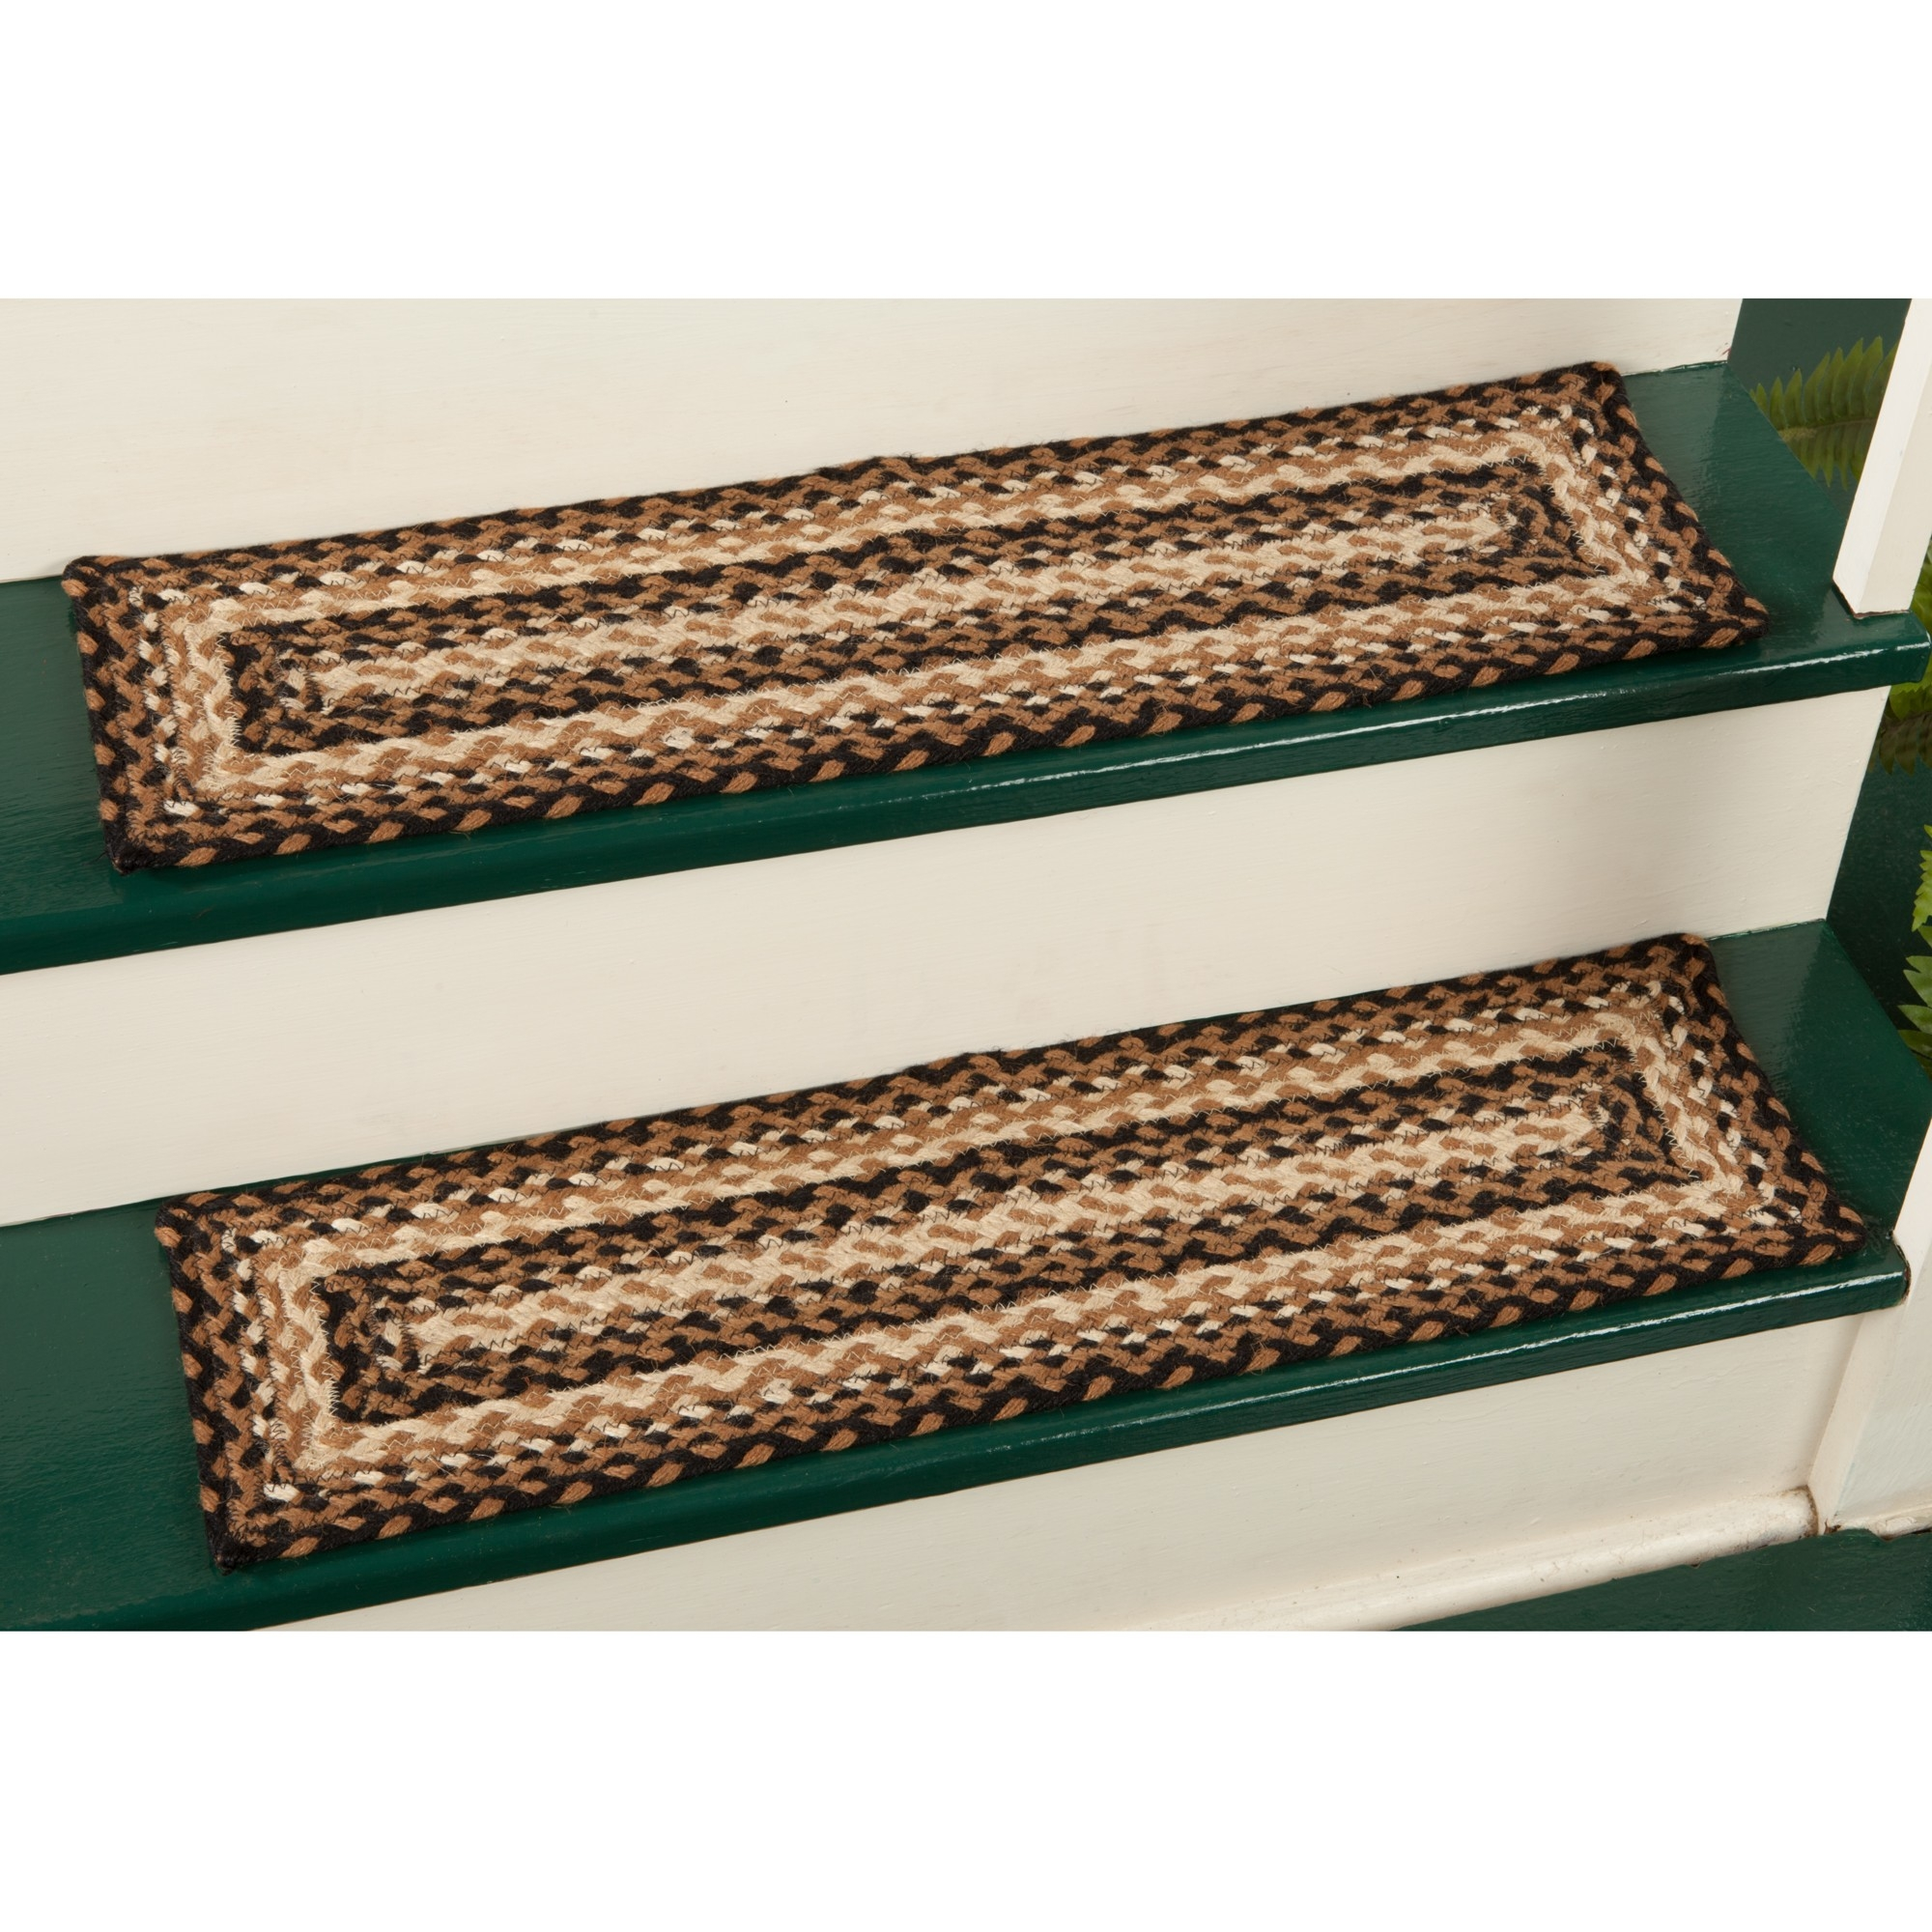 Braided Stair Tread Rugs Roselawnlutheran With Regard To Staircase Tread Rugs (Image 3 of 15)